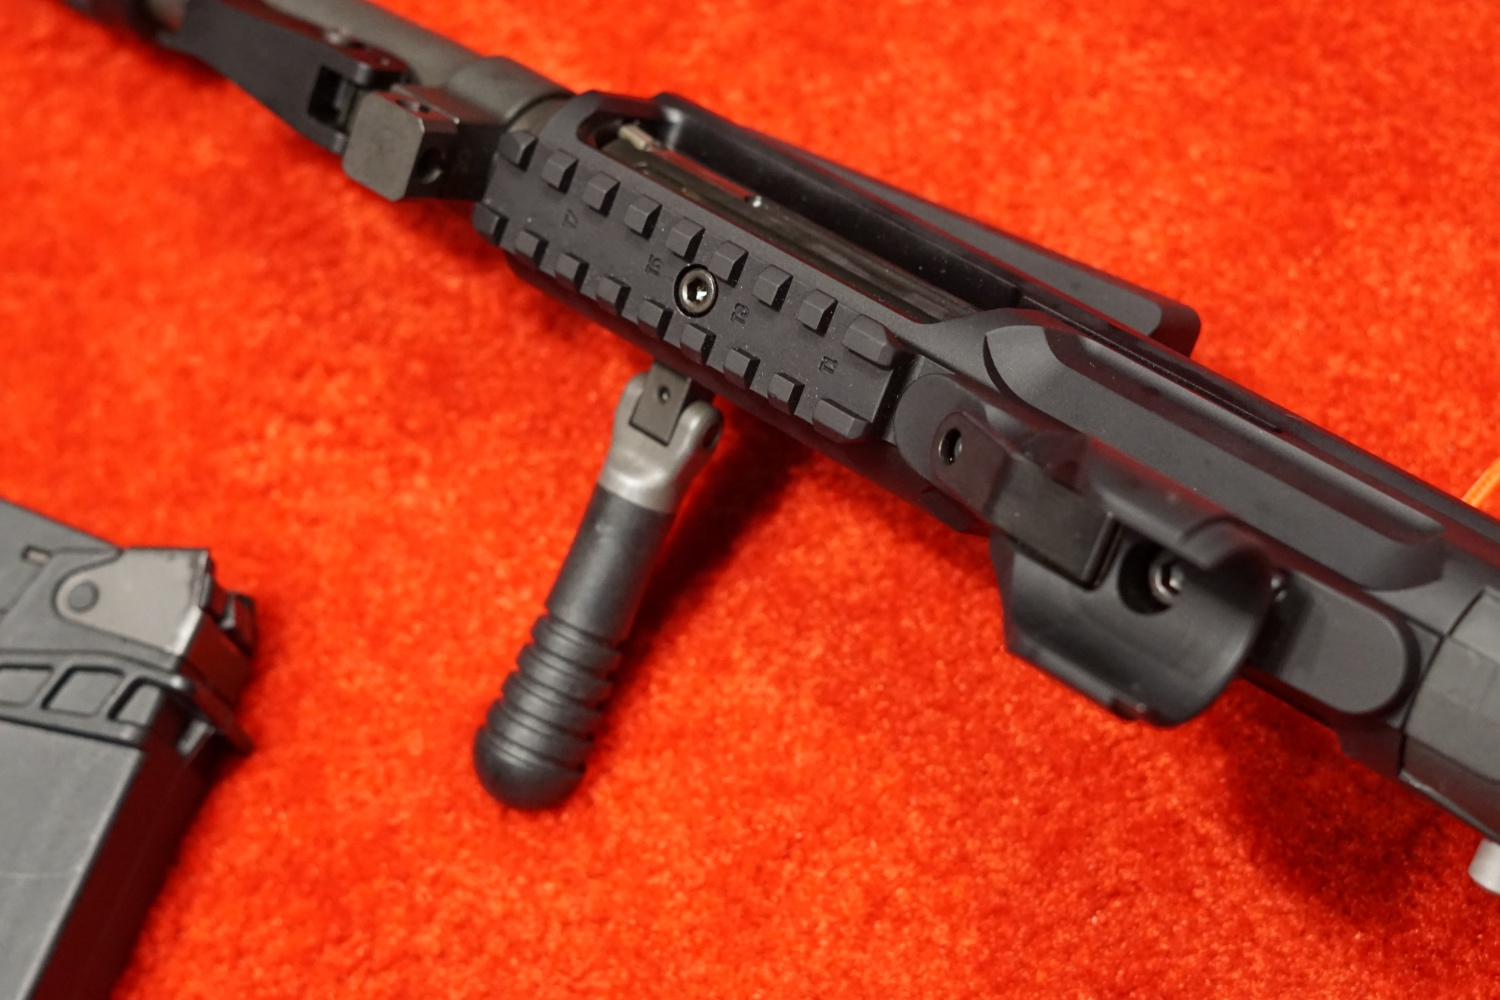 C More Sights M26 Shotgun Shot 2017 The Firearm Blog Xrep A Combination Of Taser And Unable To Execute Javascript